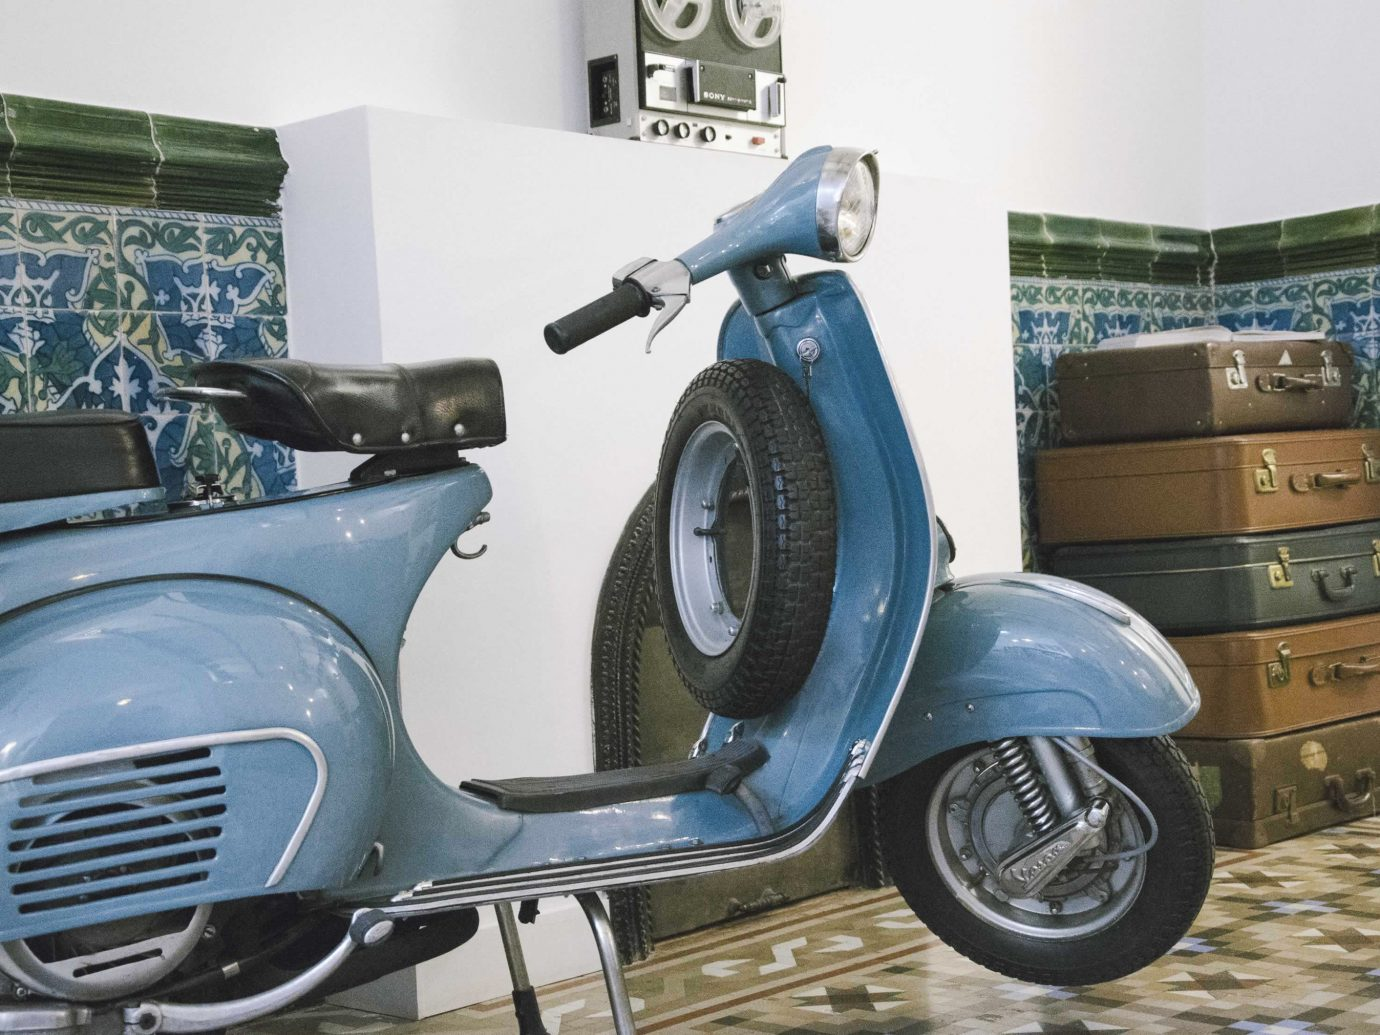 Hotels scooter vespa car indoor parked automotive design motorcycle vehicle blue automobile make seat tiled